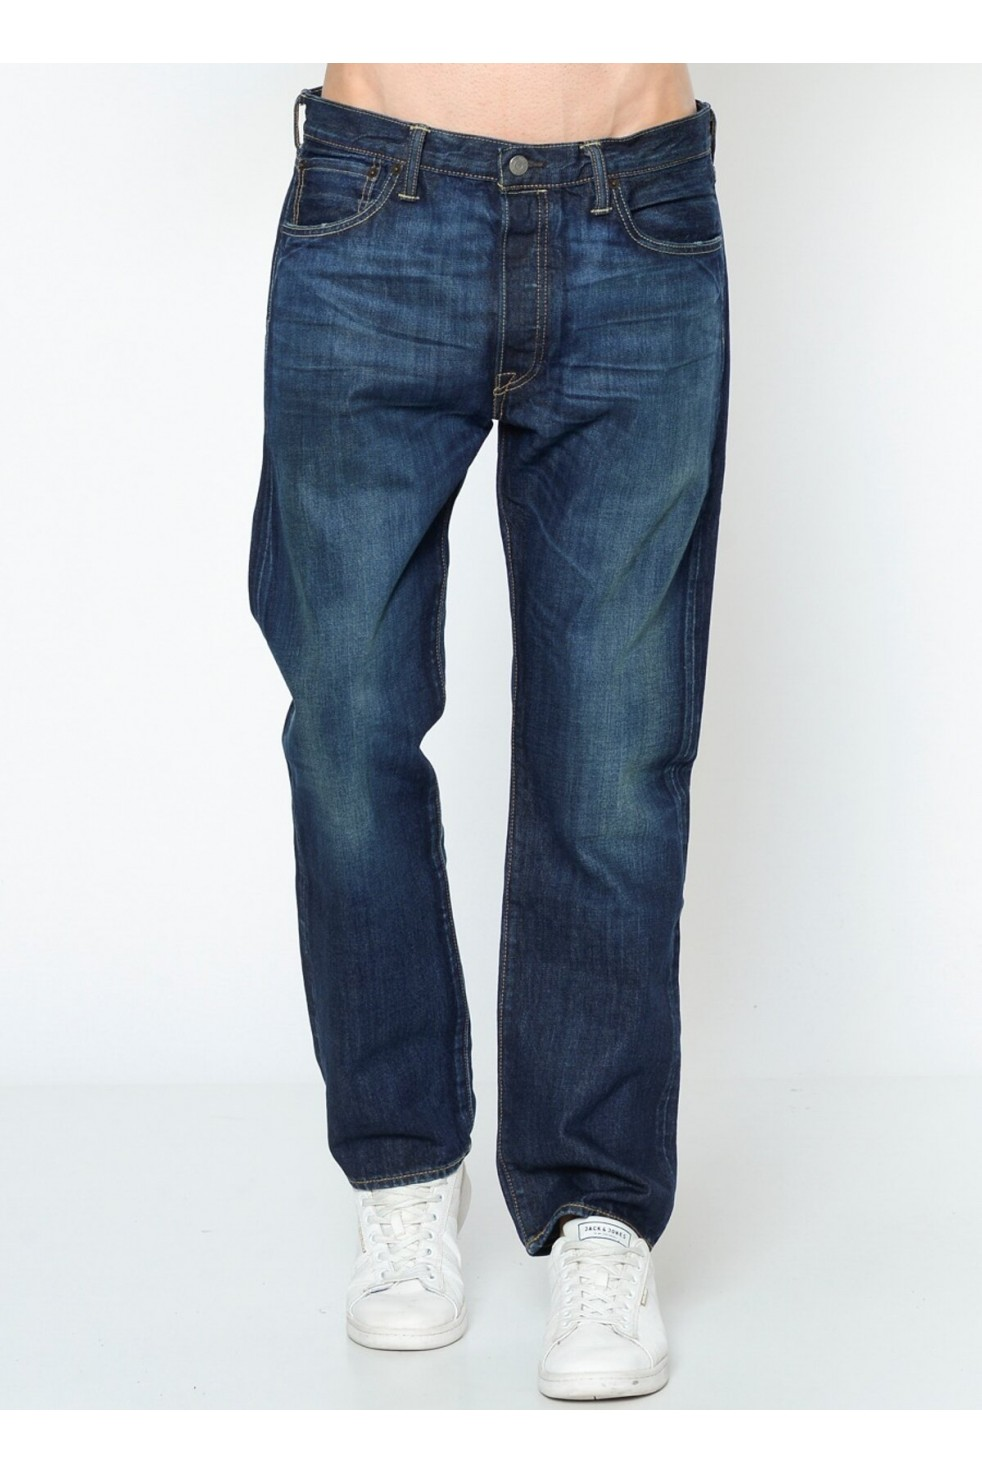 Levis-Erkek-Jean-Pantolon-501-Original-Fit-00501-2290